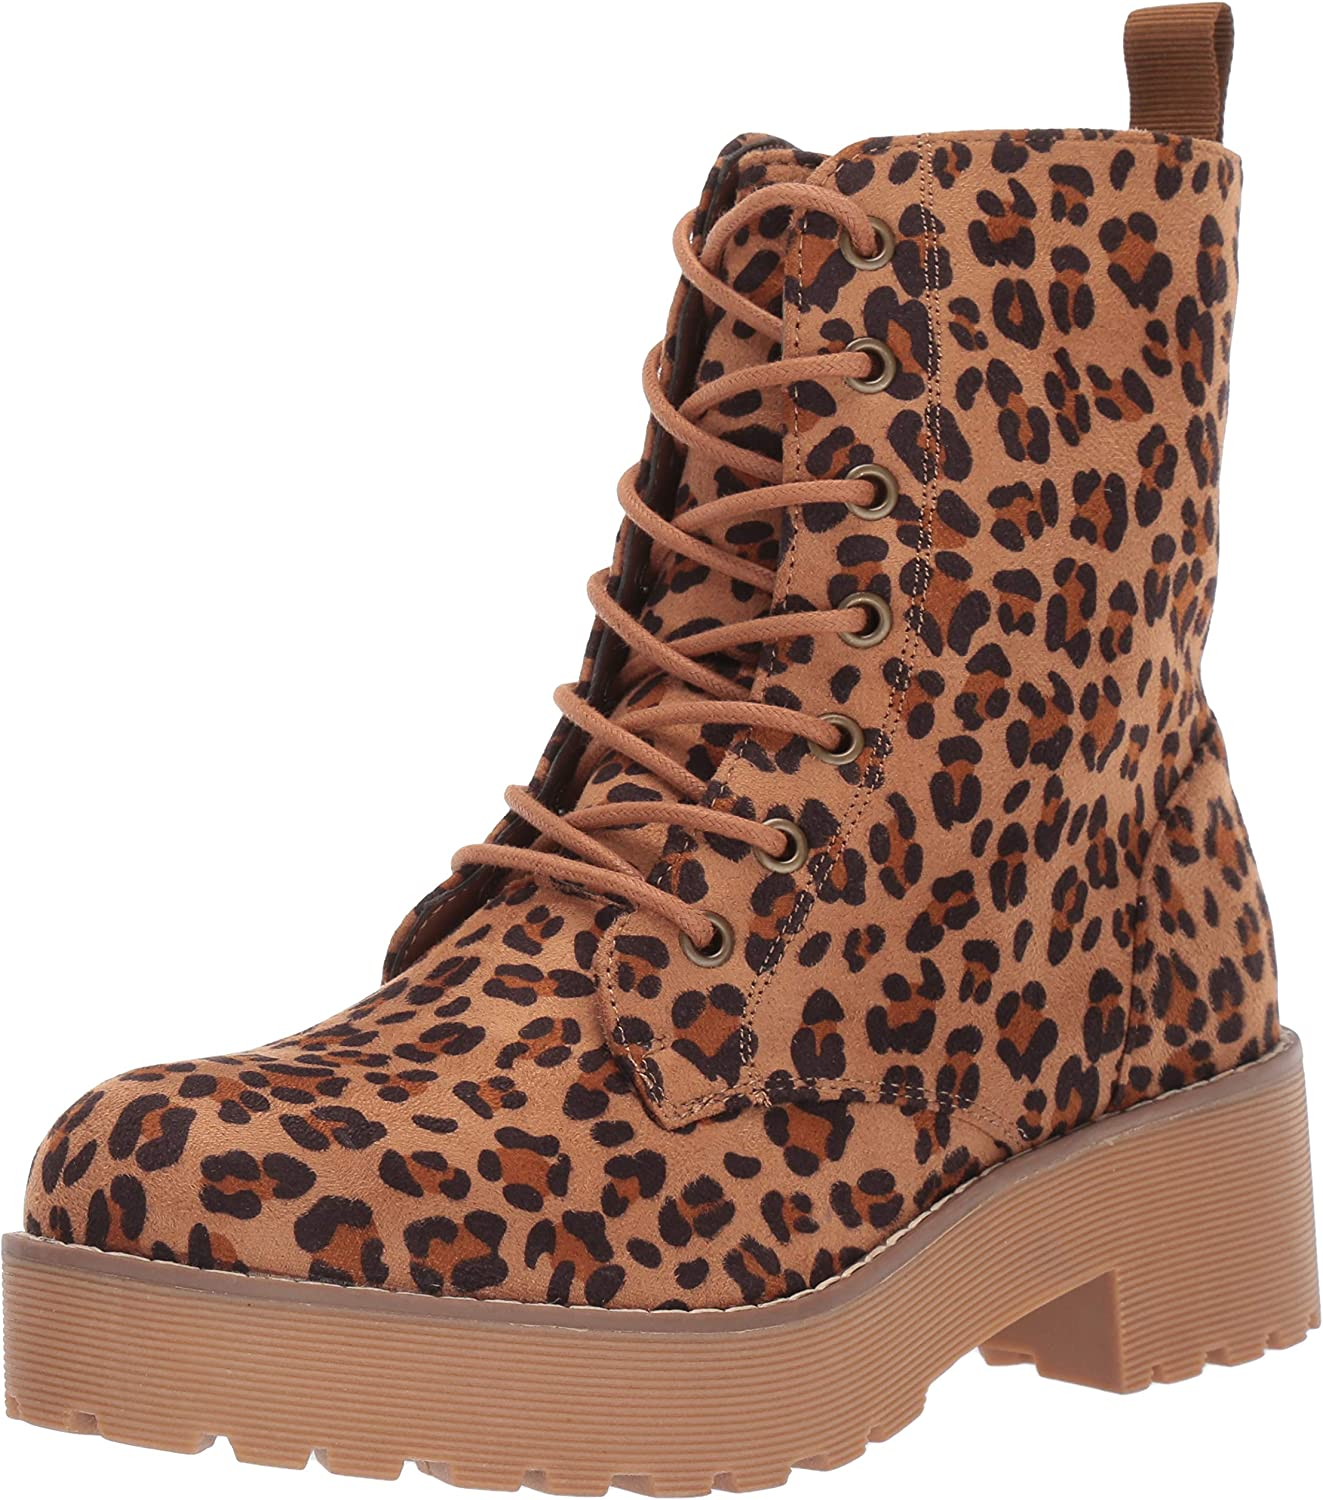 Dirty Laundry Women's Mazzy Ankle Boot